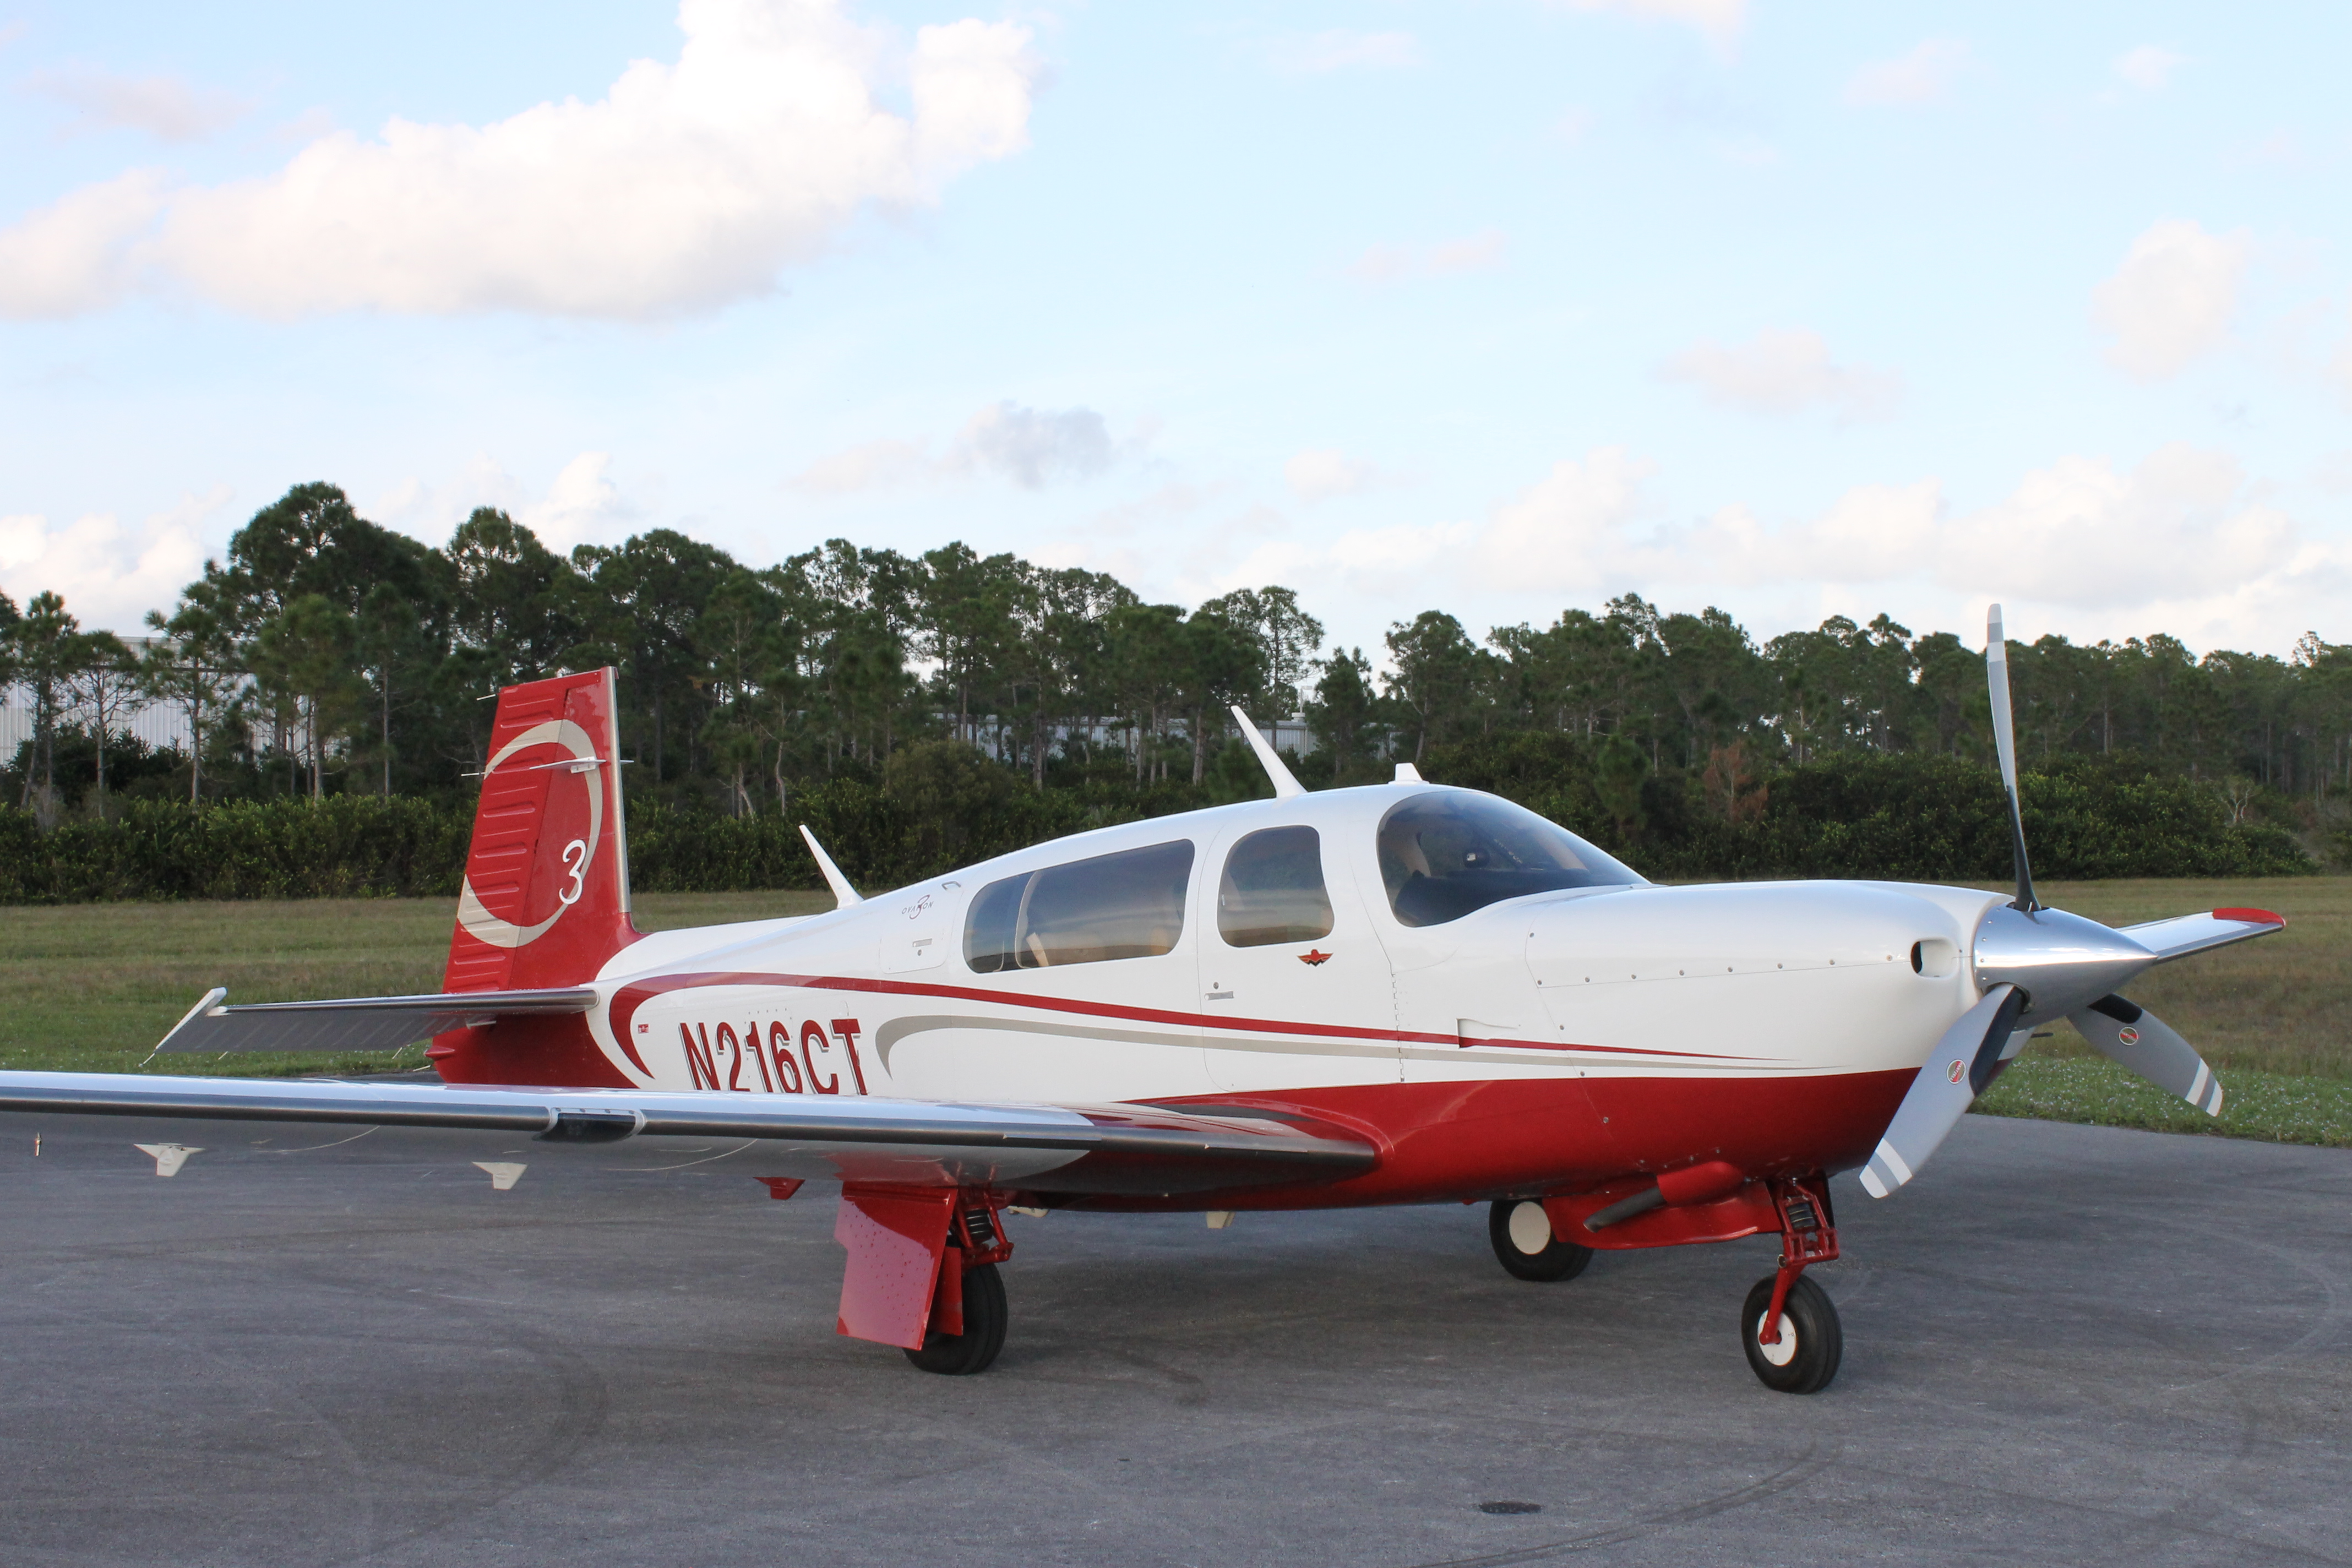 2008 Mooney M20r Ovation3 Gx For Sale N216ct Planeboard